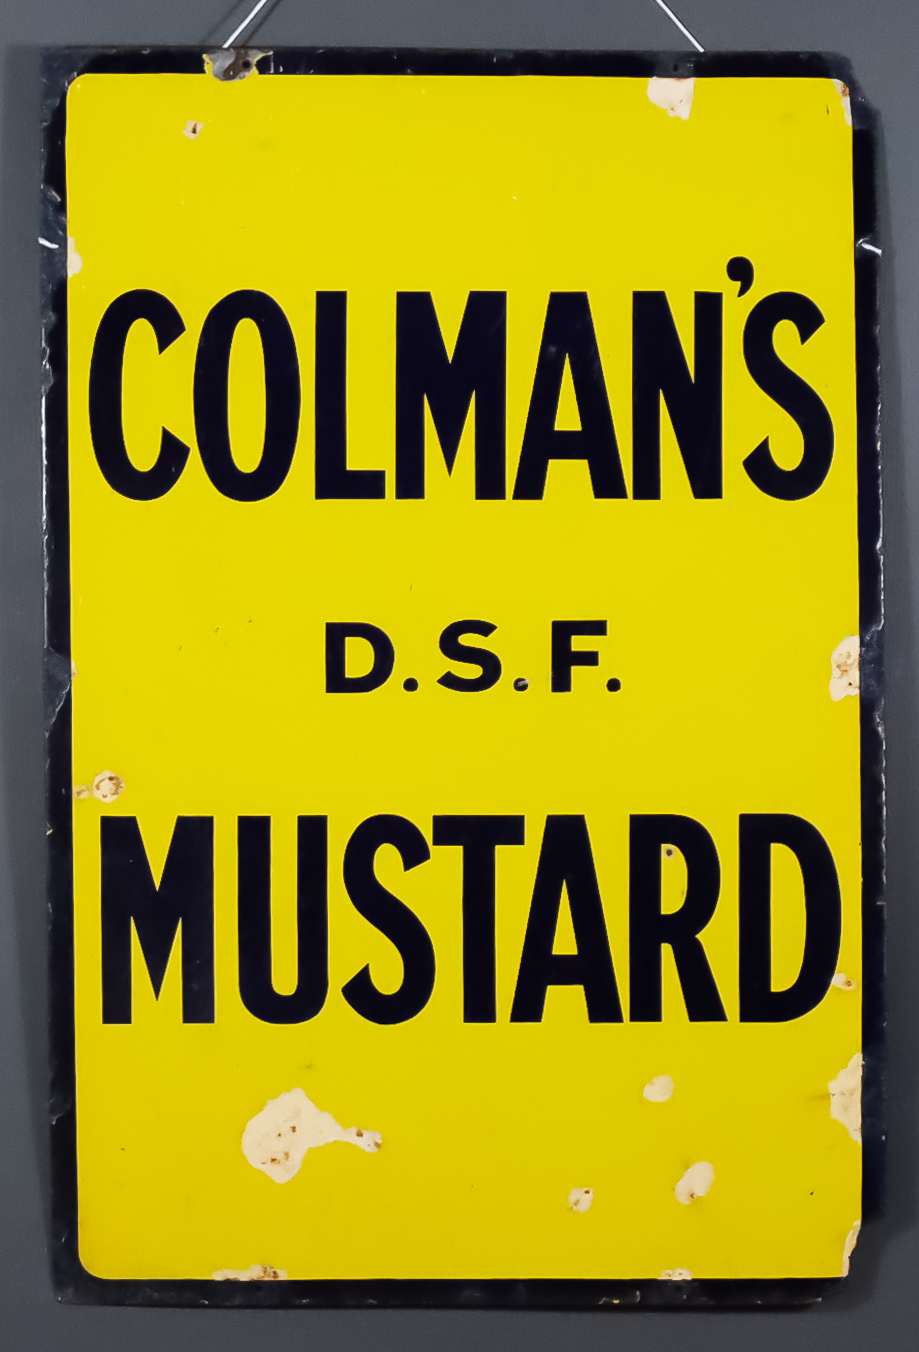 """A """"Colman's D.S.F. Mustard"""" Enamel Advertising Sign, Early 20th Century, 36ins x 24ins"""